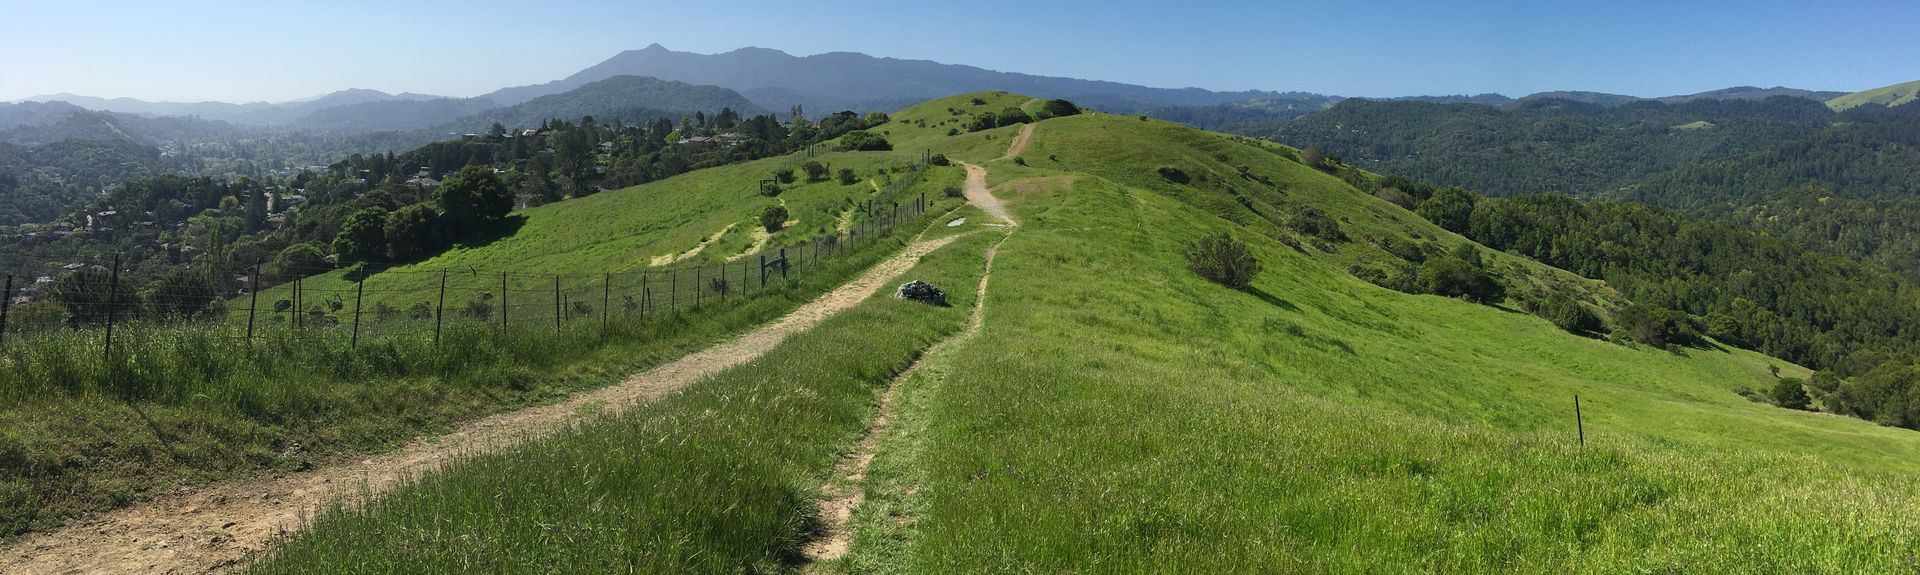 Old Saint Hilary's Open Space Preserve, Marin County, CA, USA